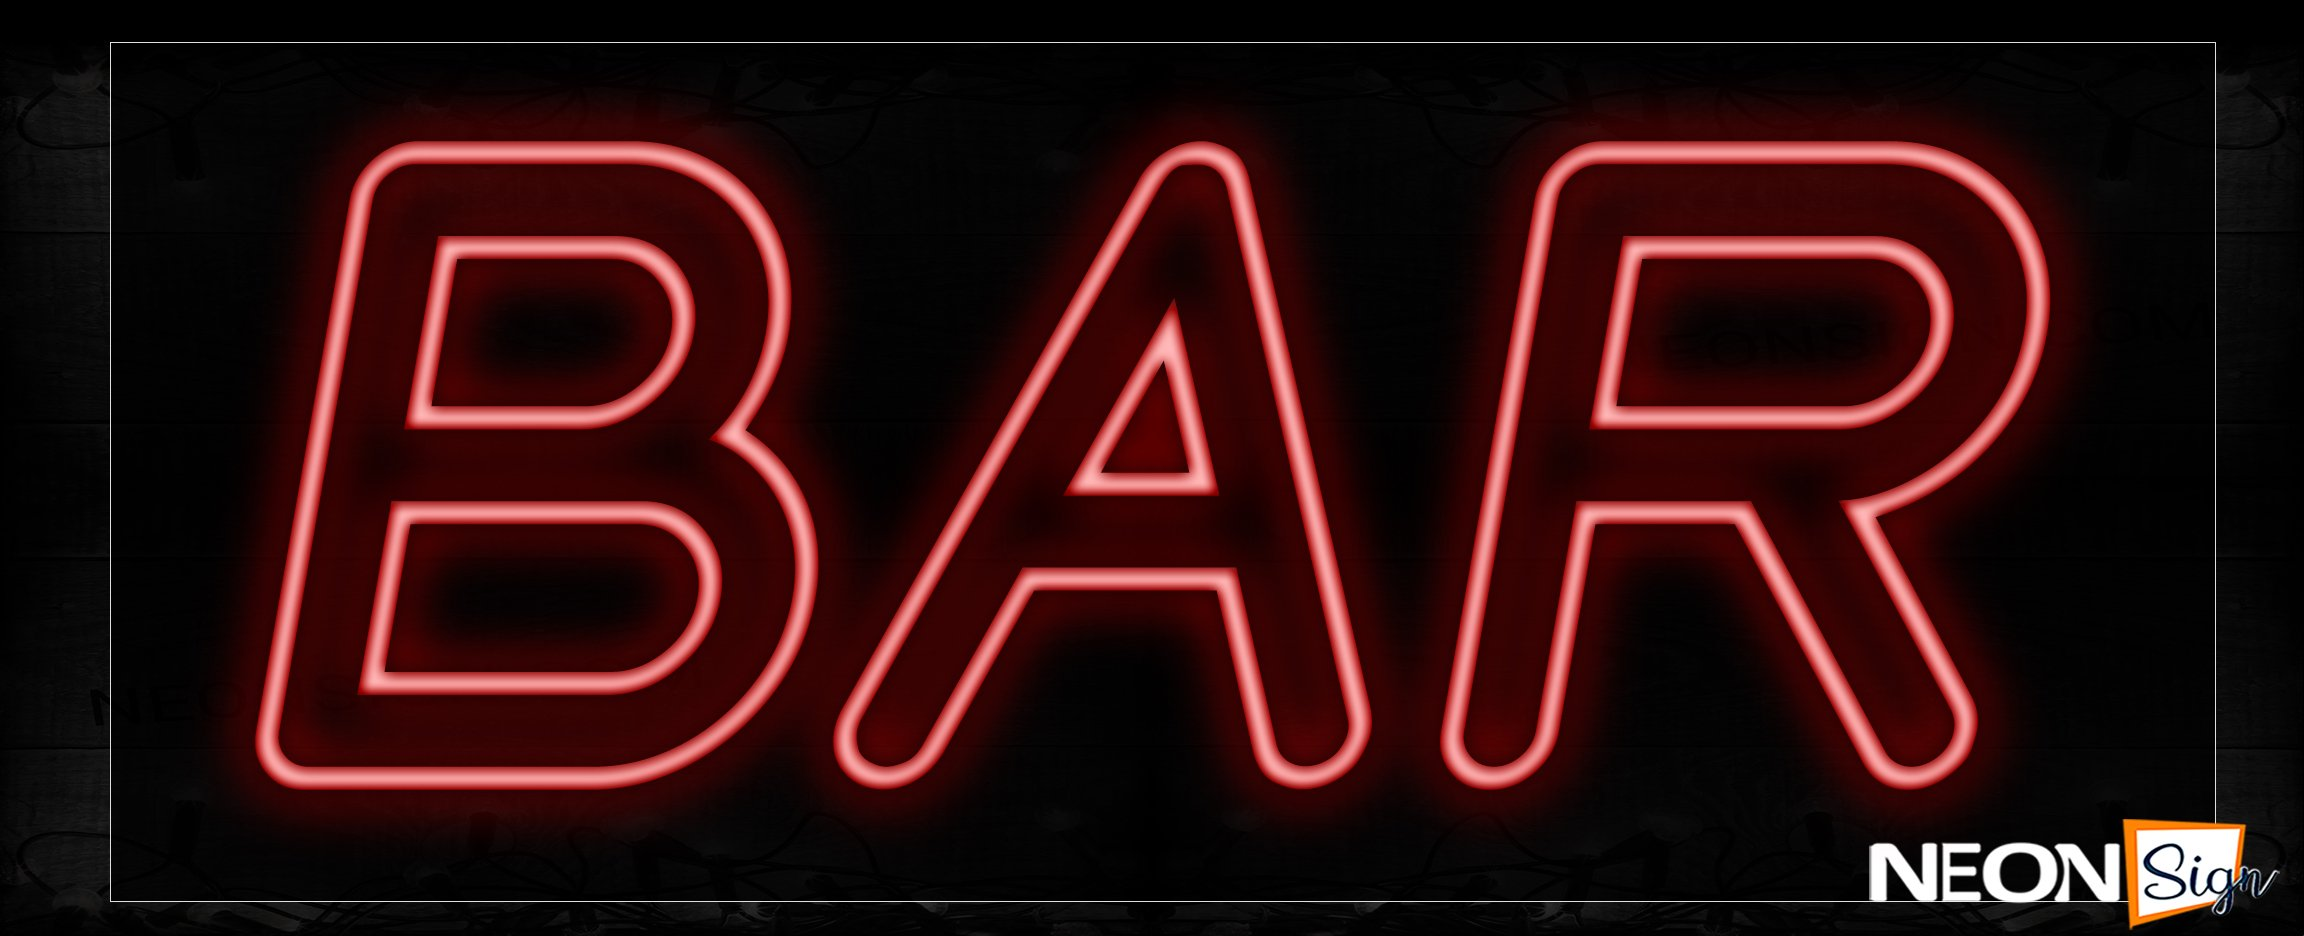 Image of Bar Neon Signs